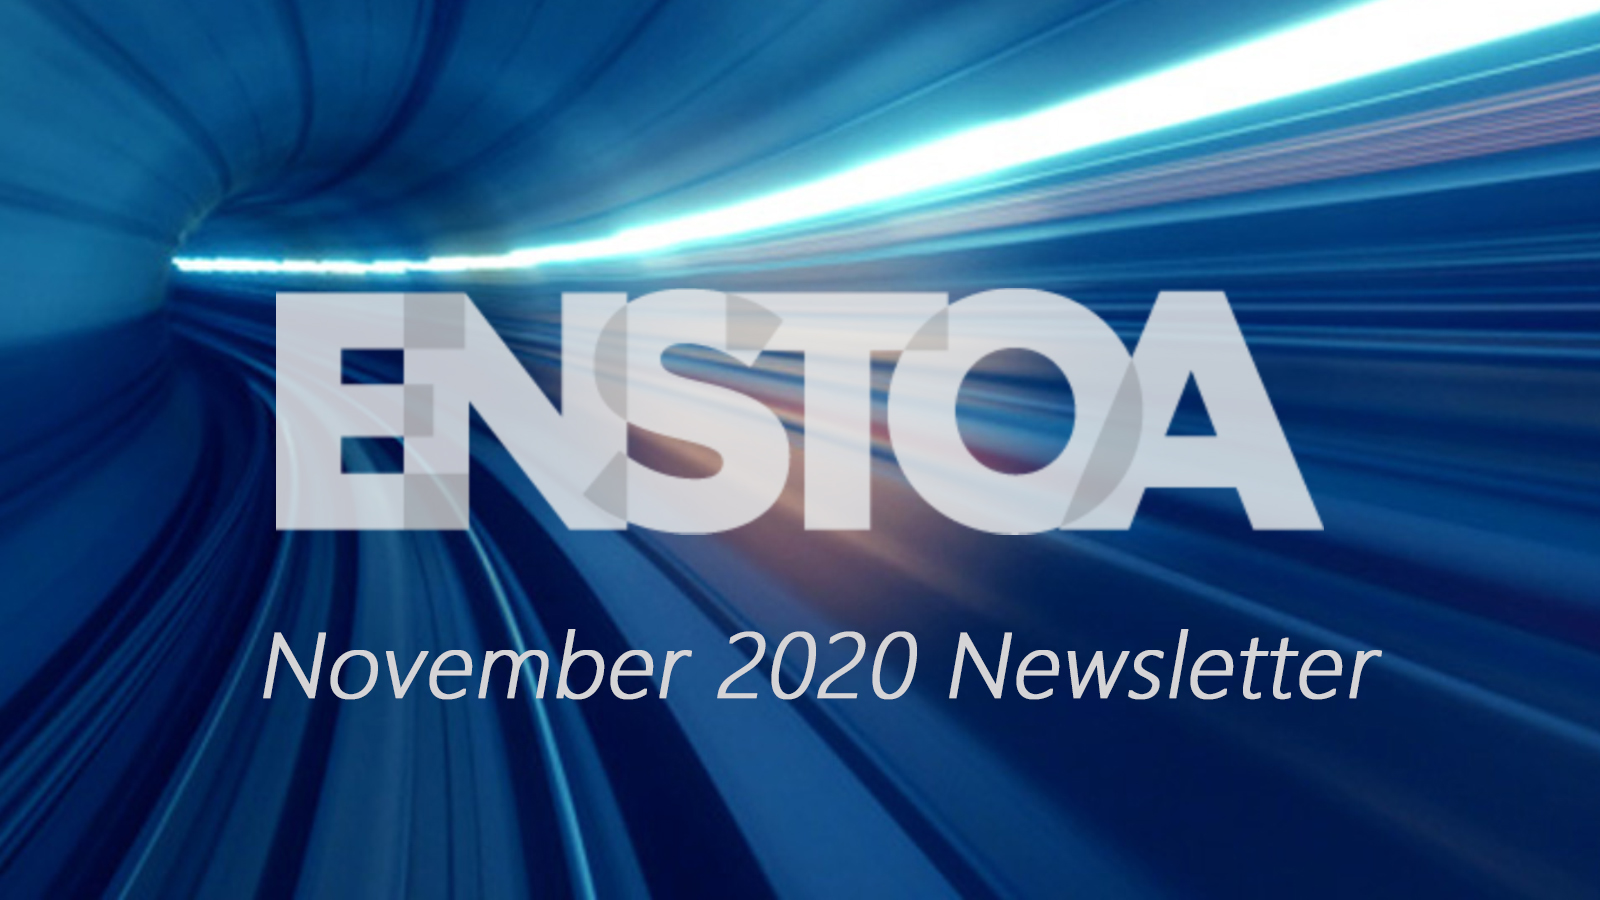 November 2020 Newsletter: Digital transformation without the multi-million-dollar price tag